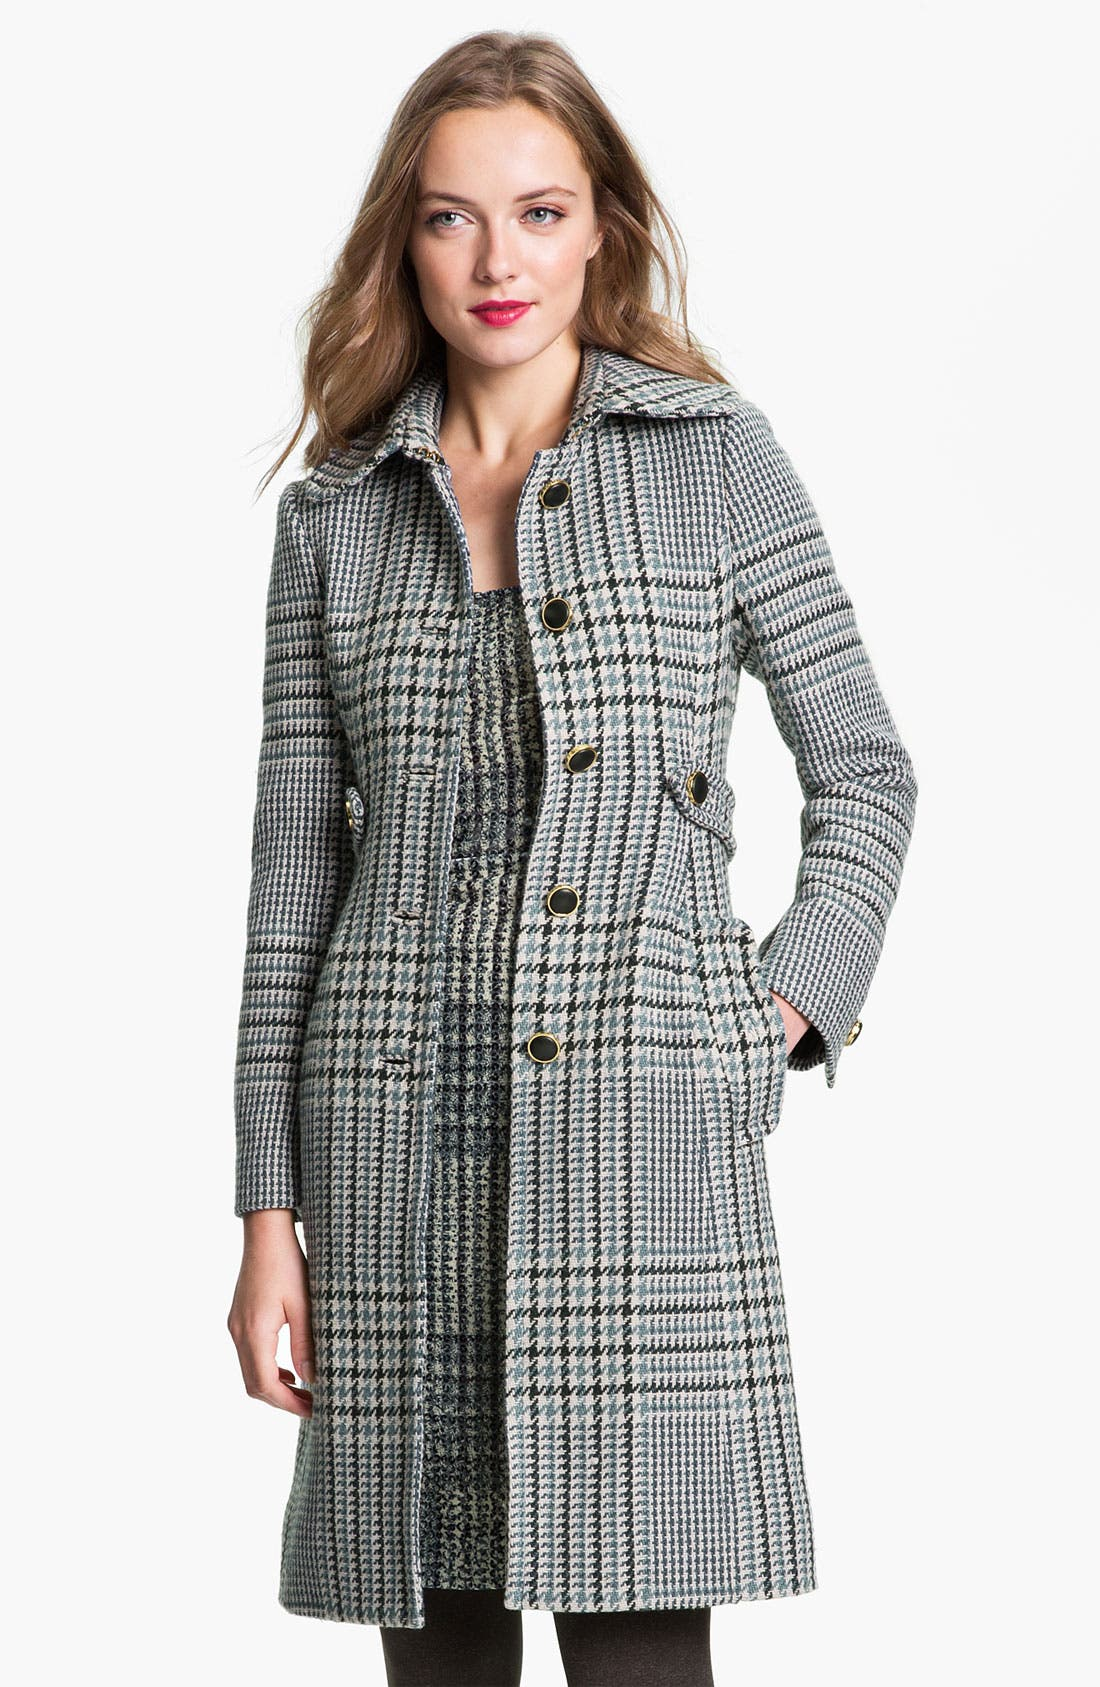 Alternate Image 1 Selected - Tory Burch 'Virginia' Houndstooth Coat